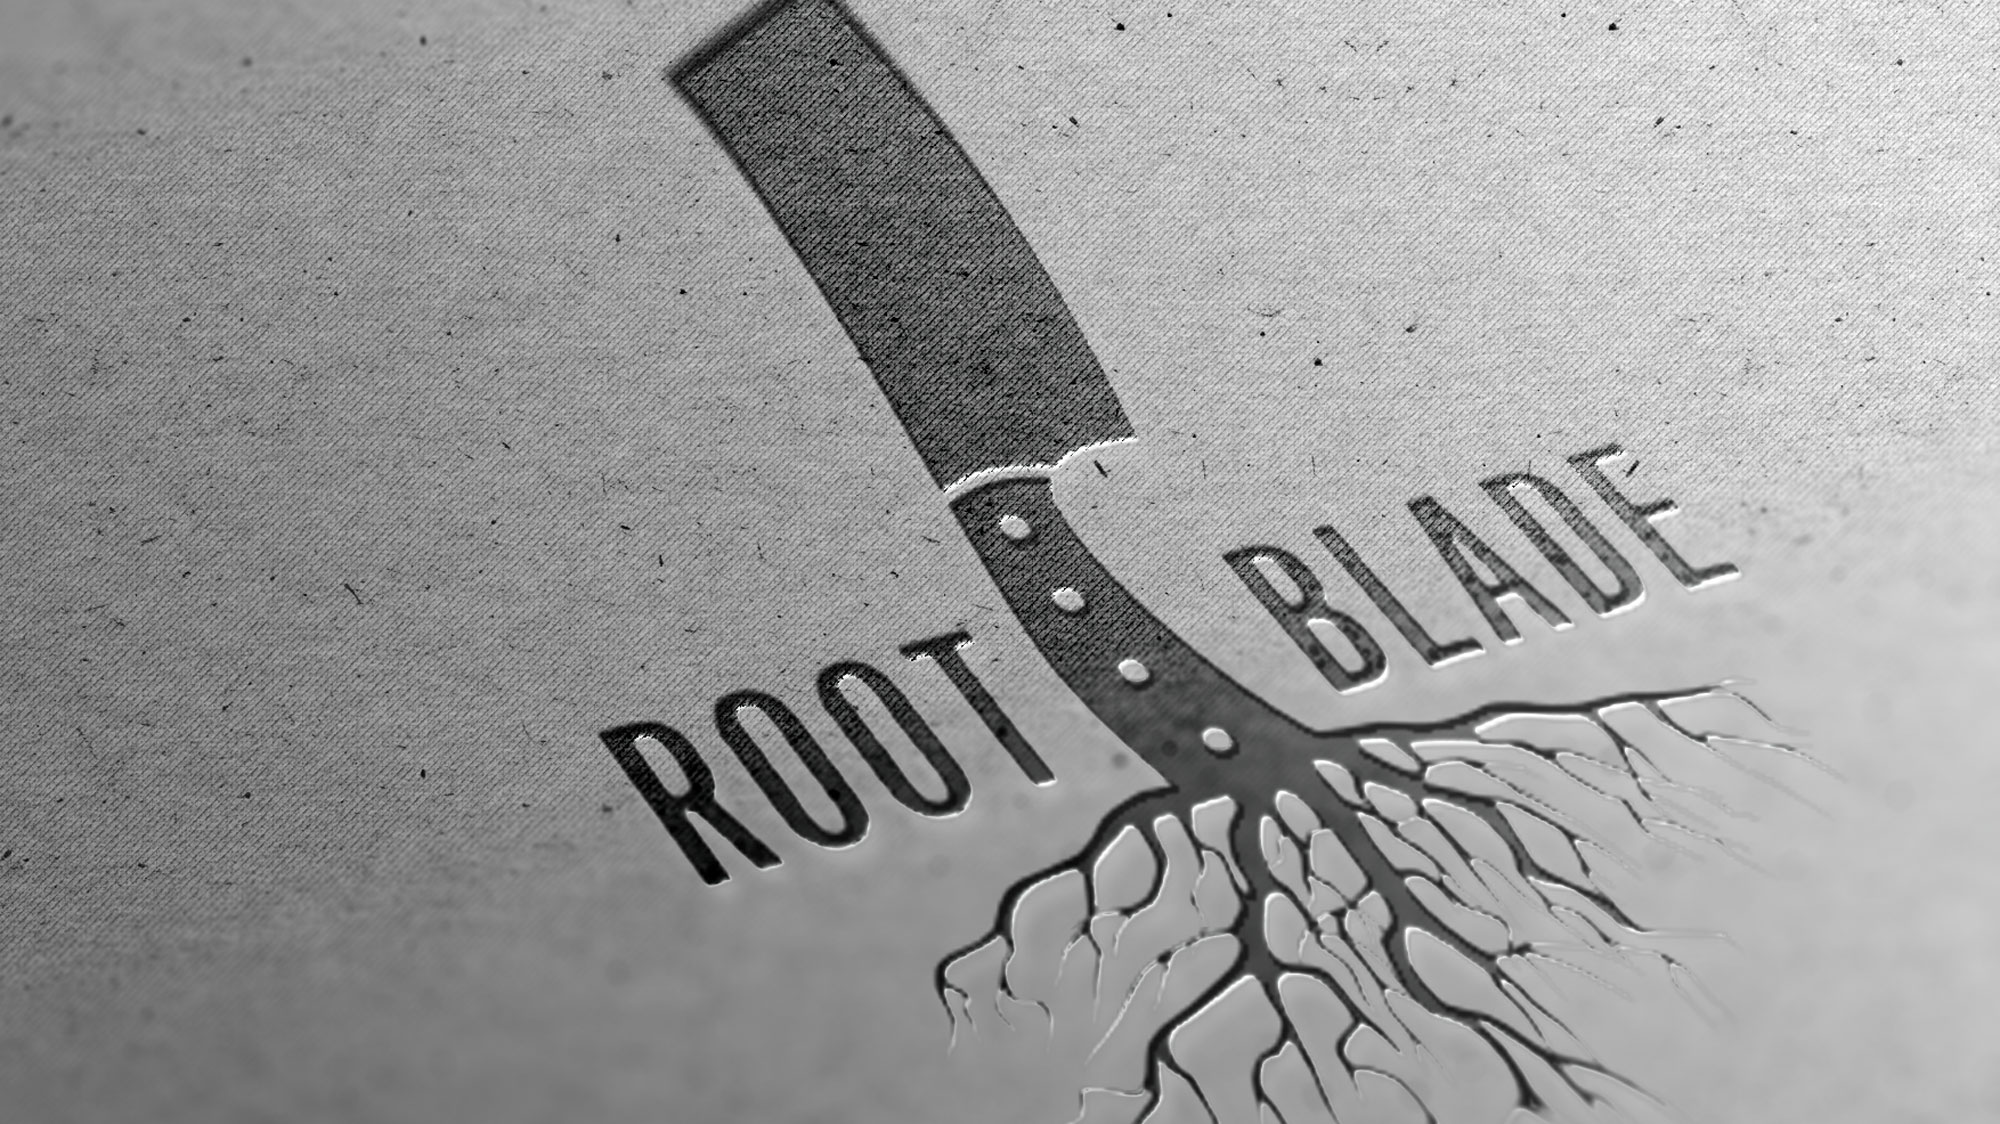 root blade giant is cover image